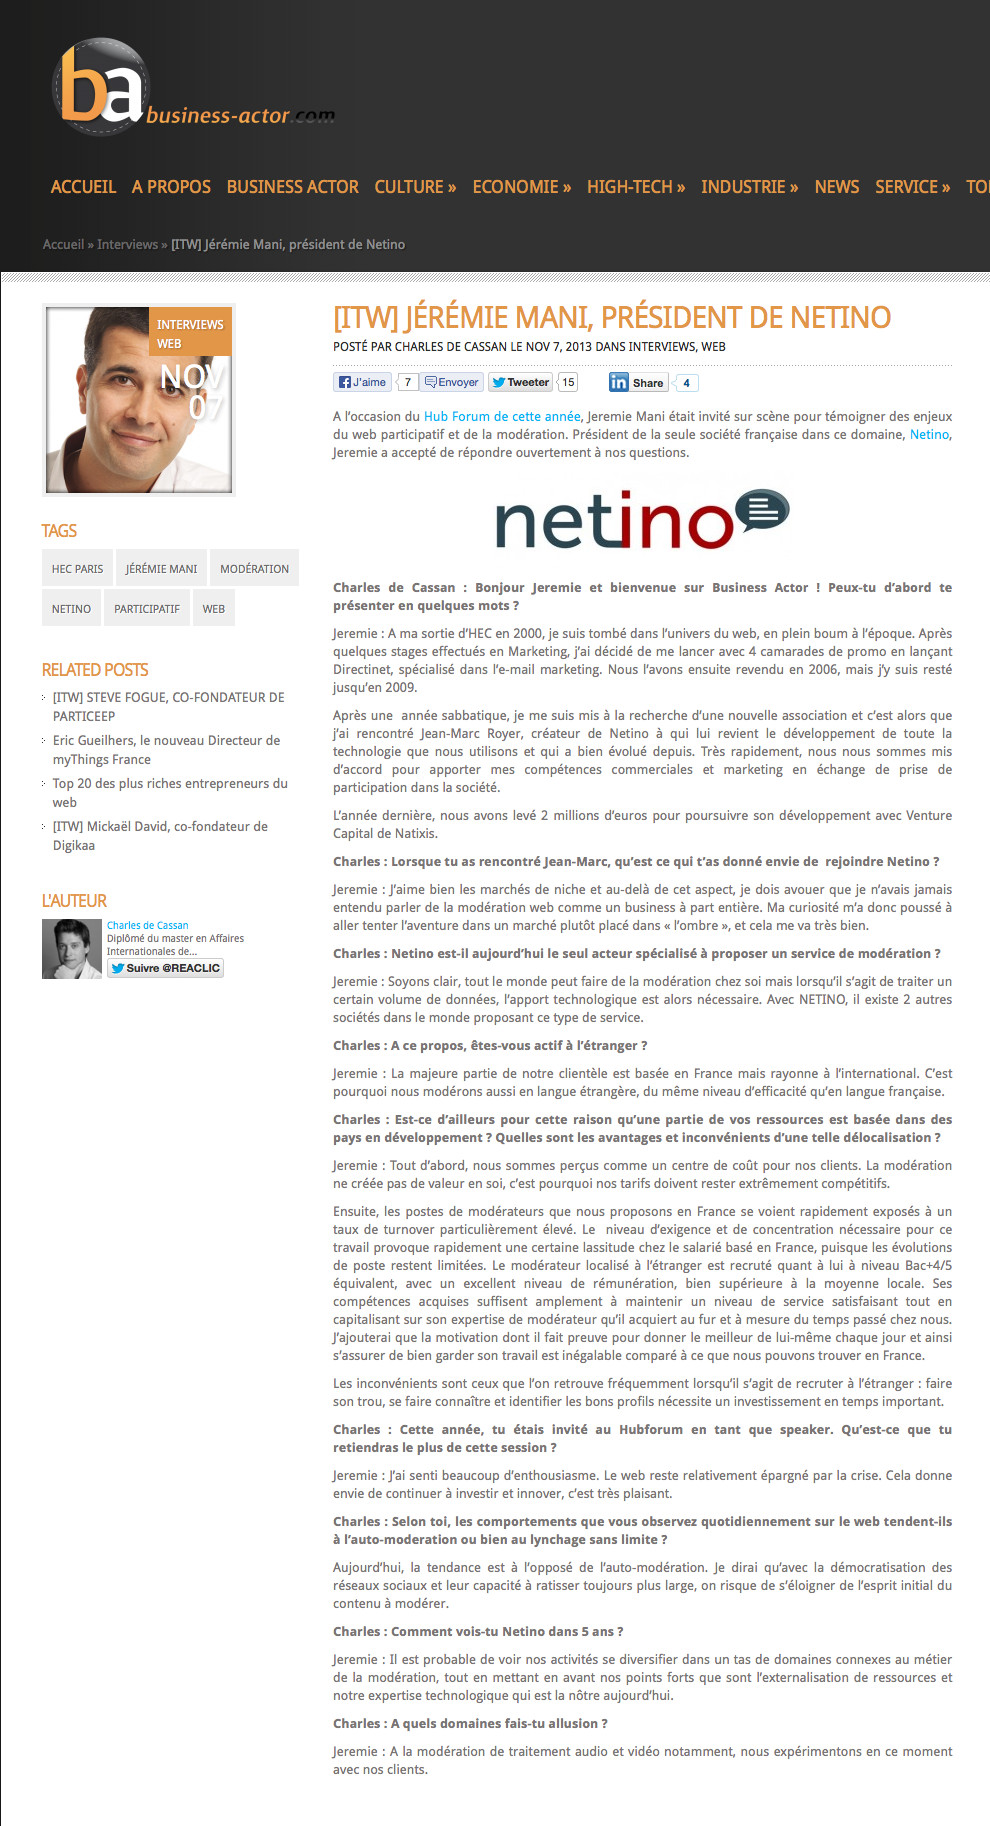 Jeremie-Mani-interview-Netino-Business-Actorhub-forum